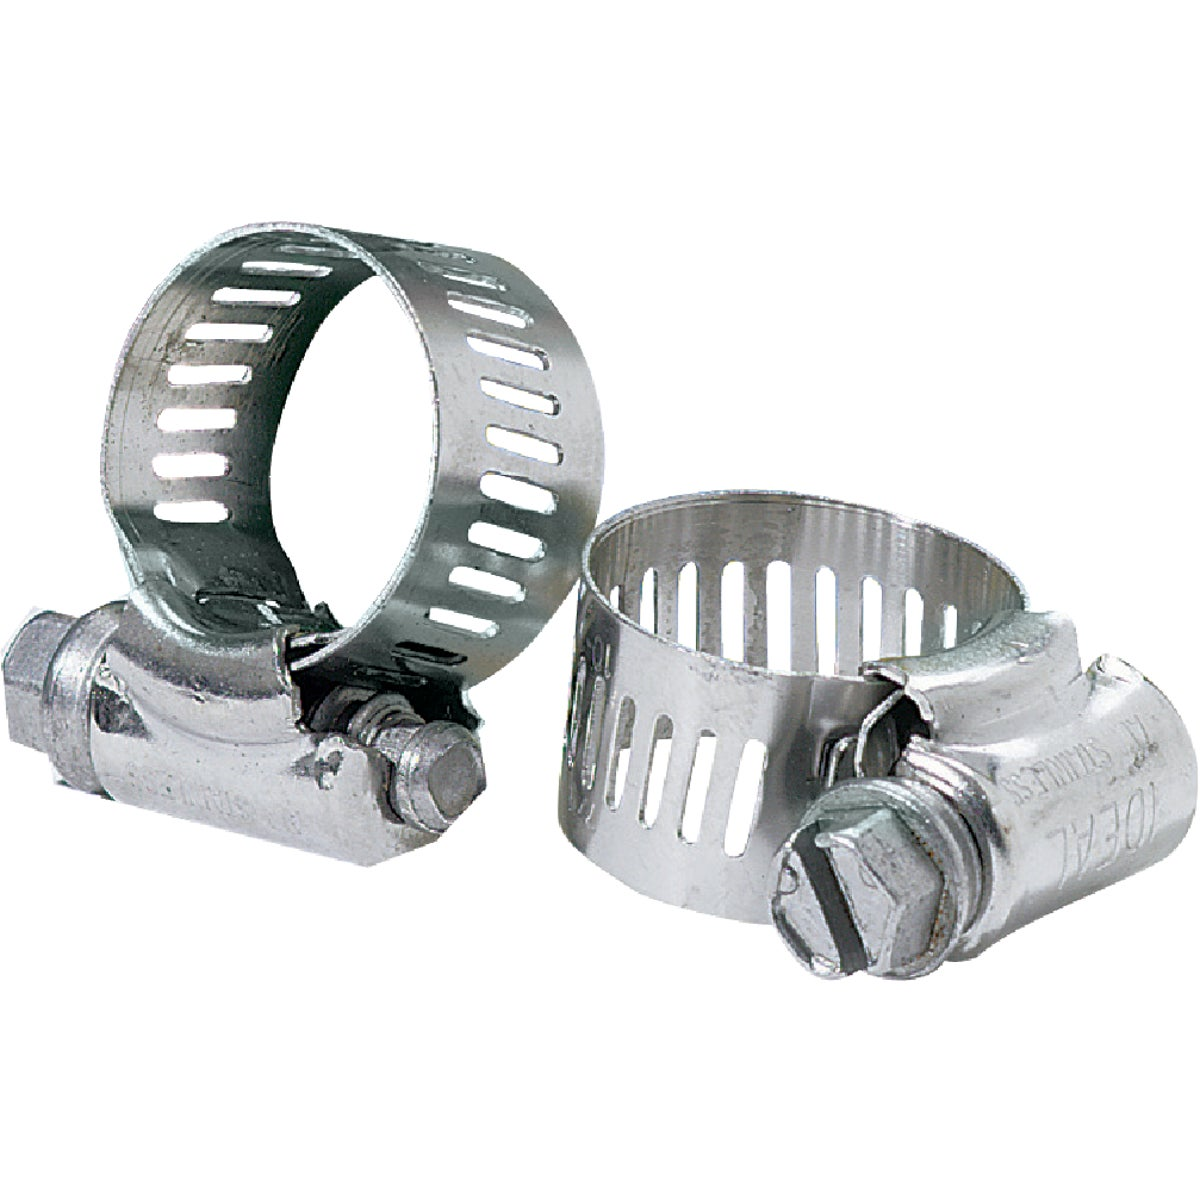 "2-1/4"" TO 3-1/4"" CLAMP"